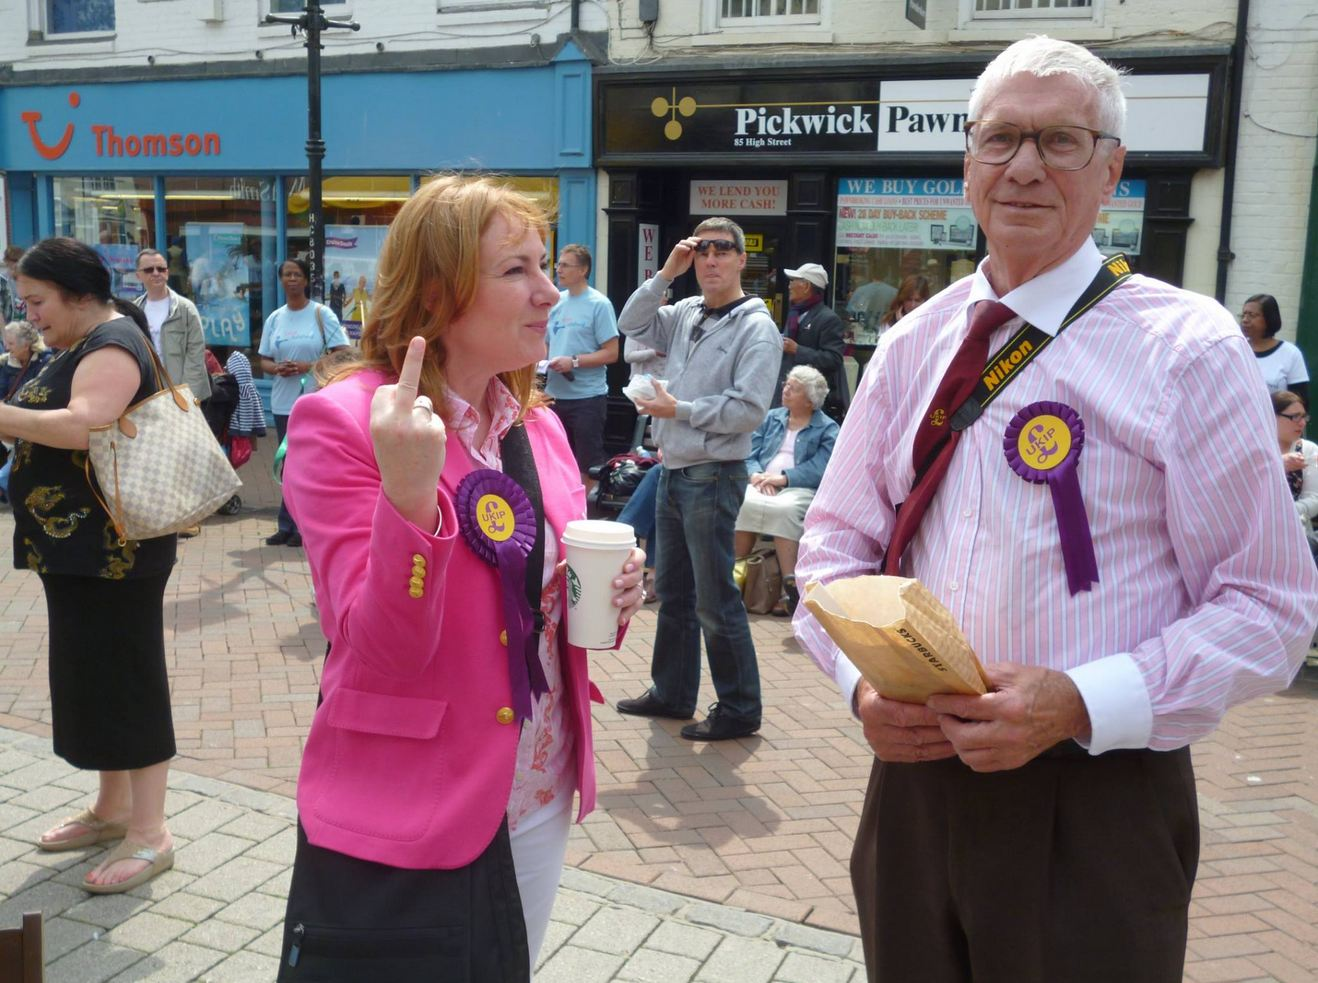 'I got angry but I don't regret it': Ukip candidate defends swearing at protesters